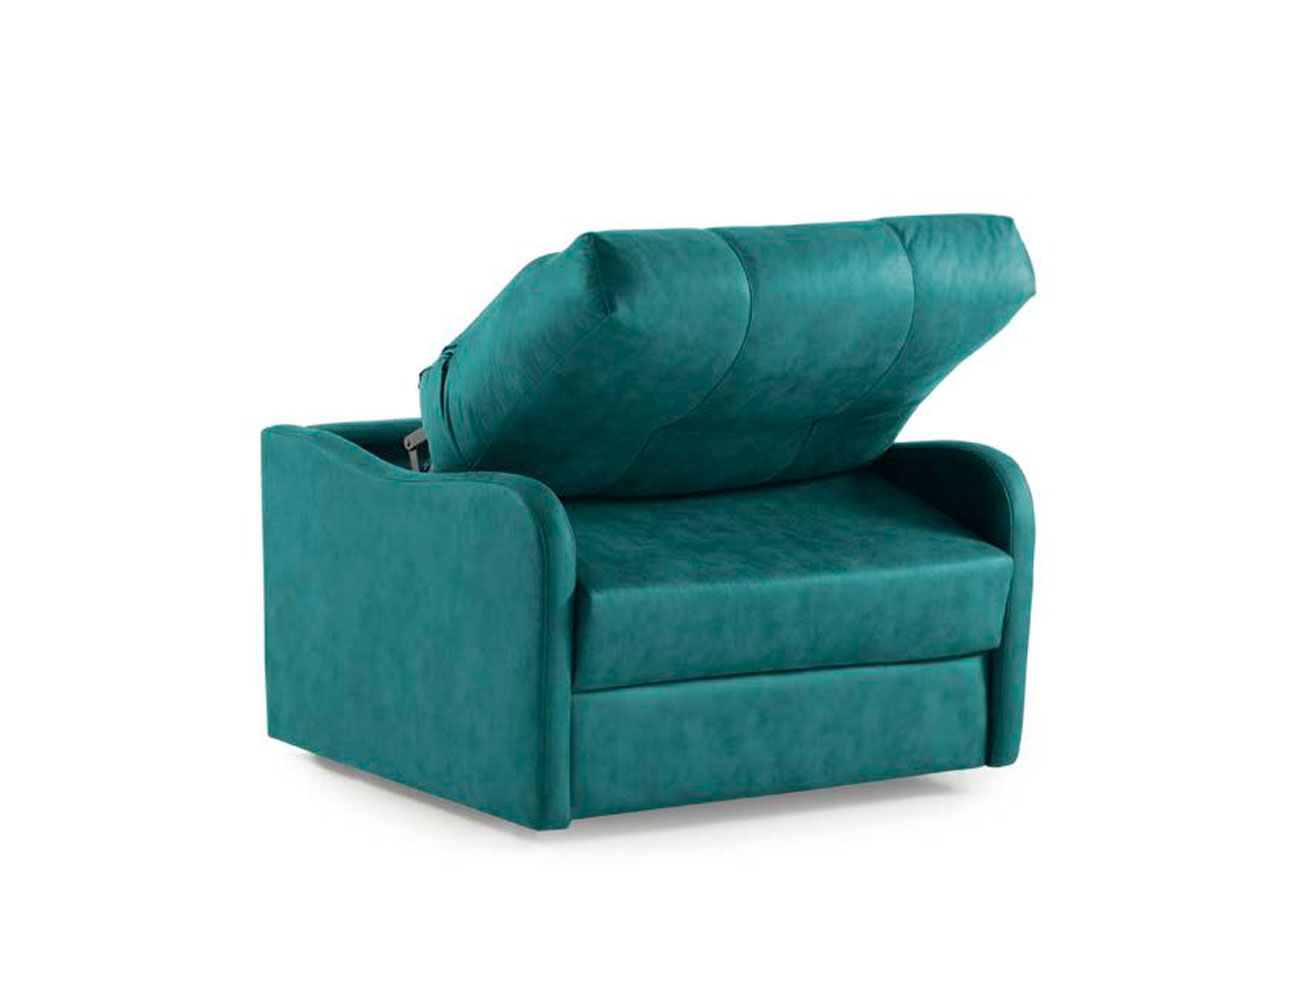 Sillon cama apertura italiano mini 1